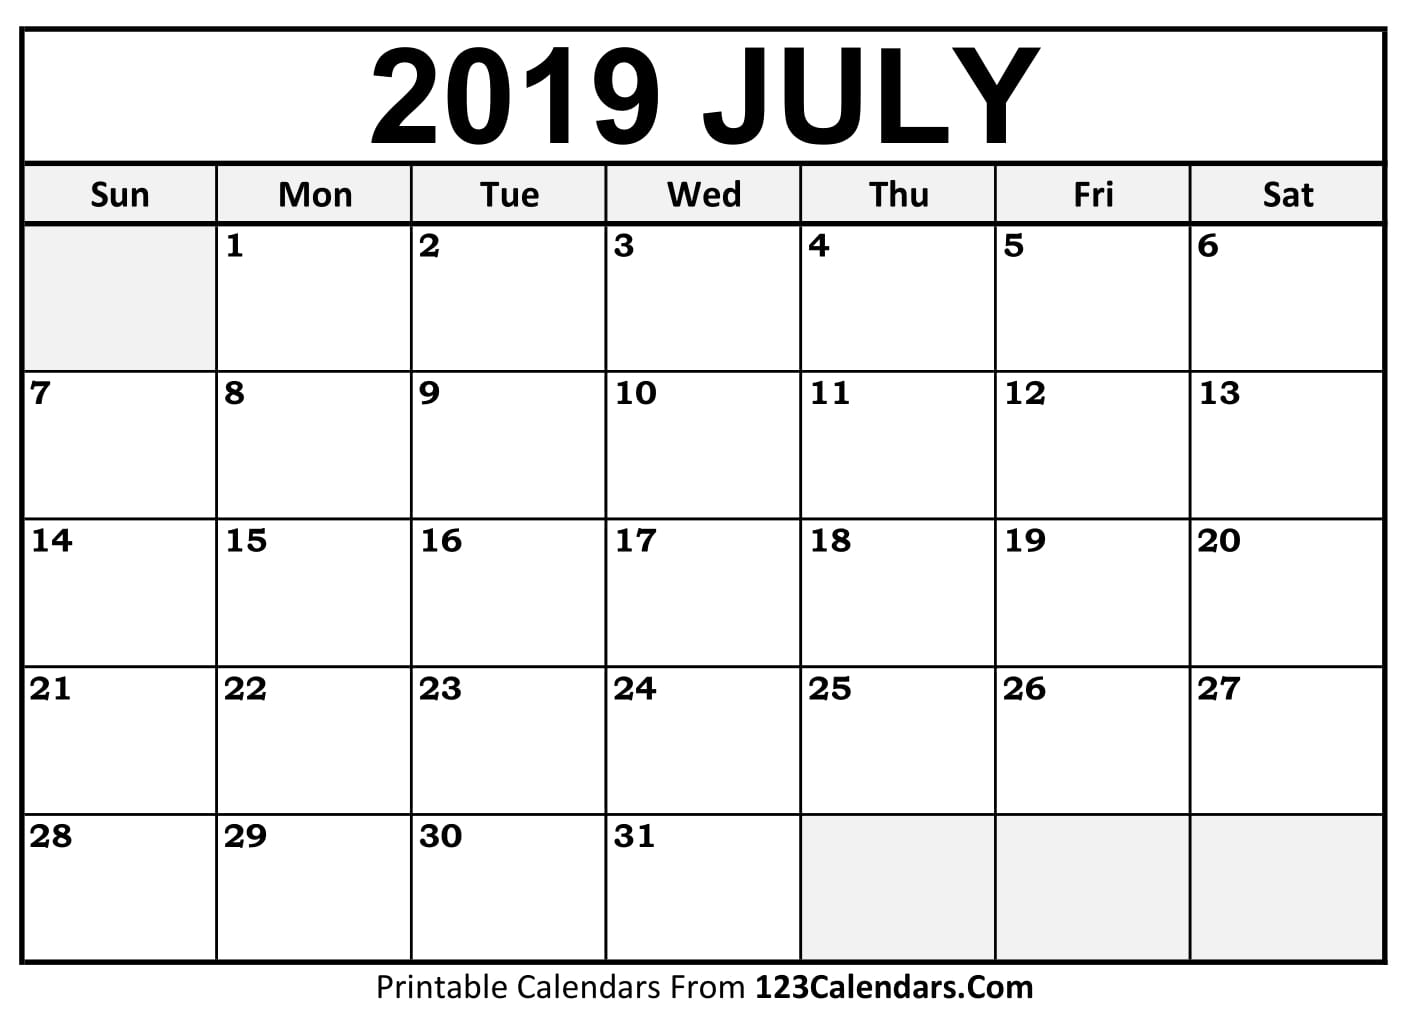 Calendar Of June And July : Printable july calendar templates calendars